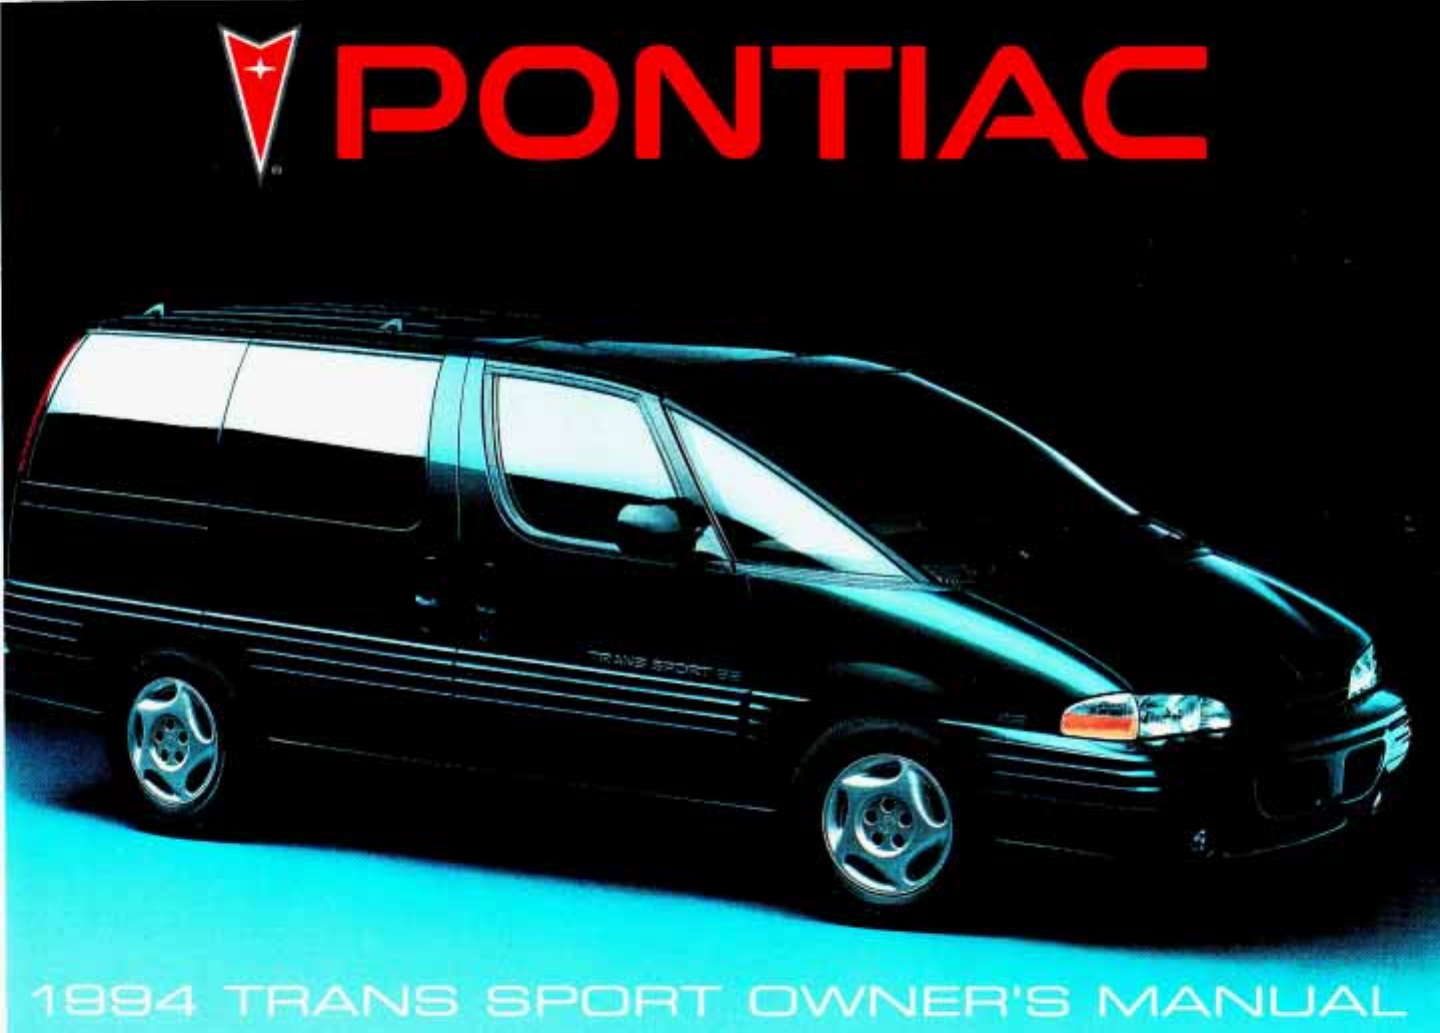 See our other Chevrolet Trans Sport Manuals: 1997 Pontiac Trans Sport  Owners Manual